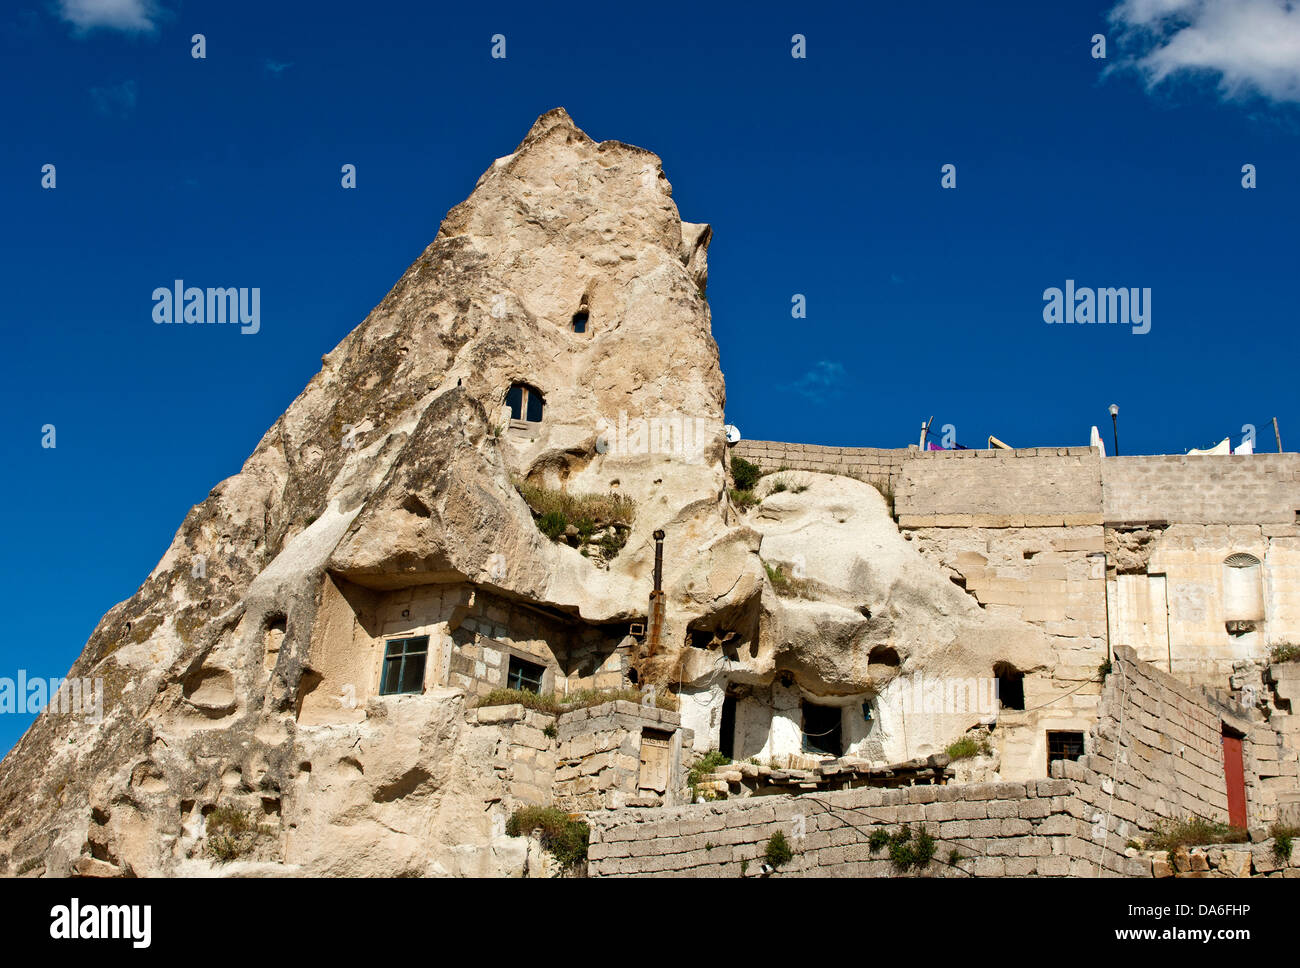 Cave dwellings in hollowed tuff rock - Stock Image